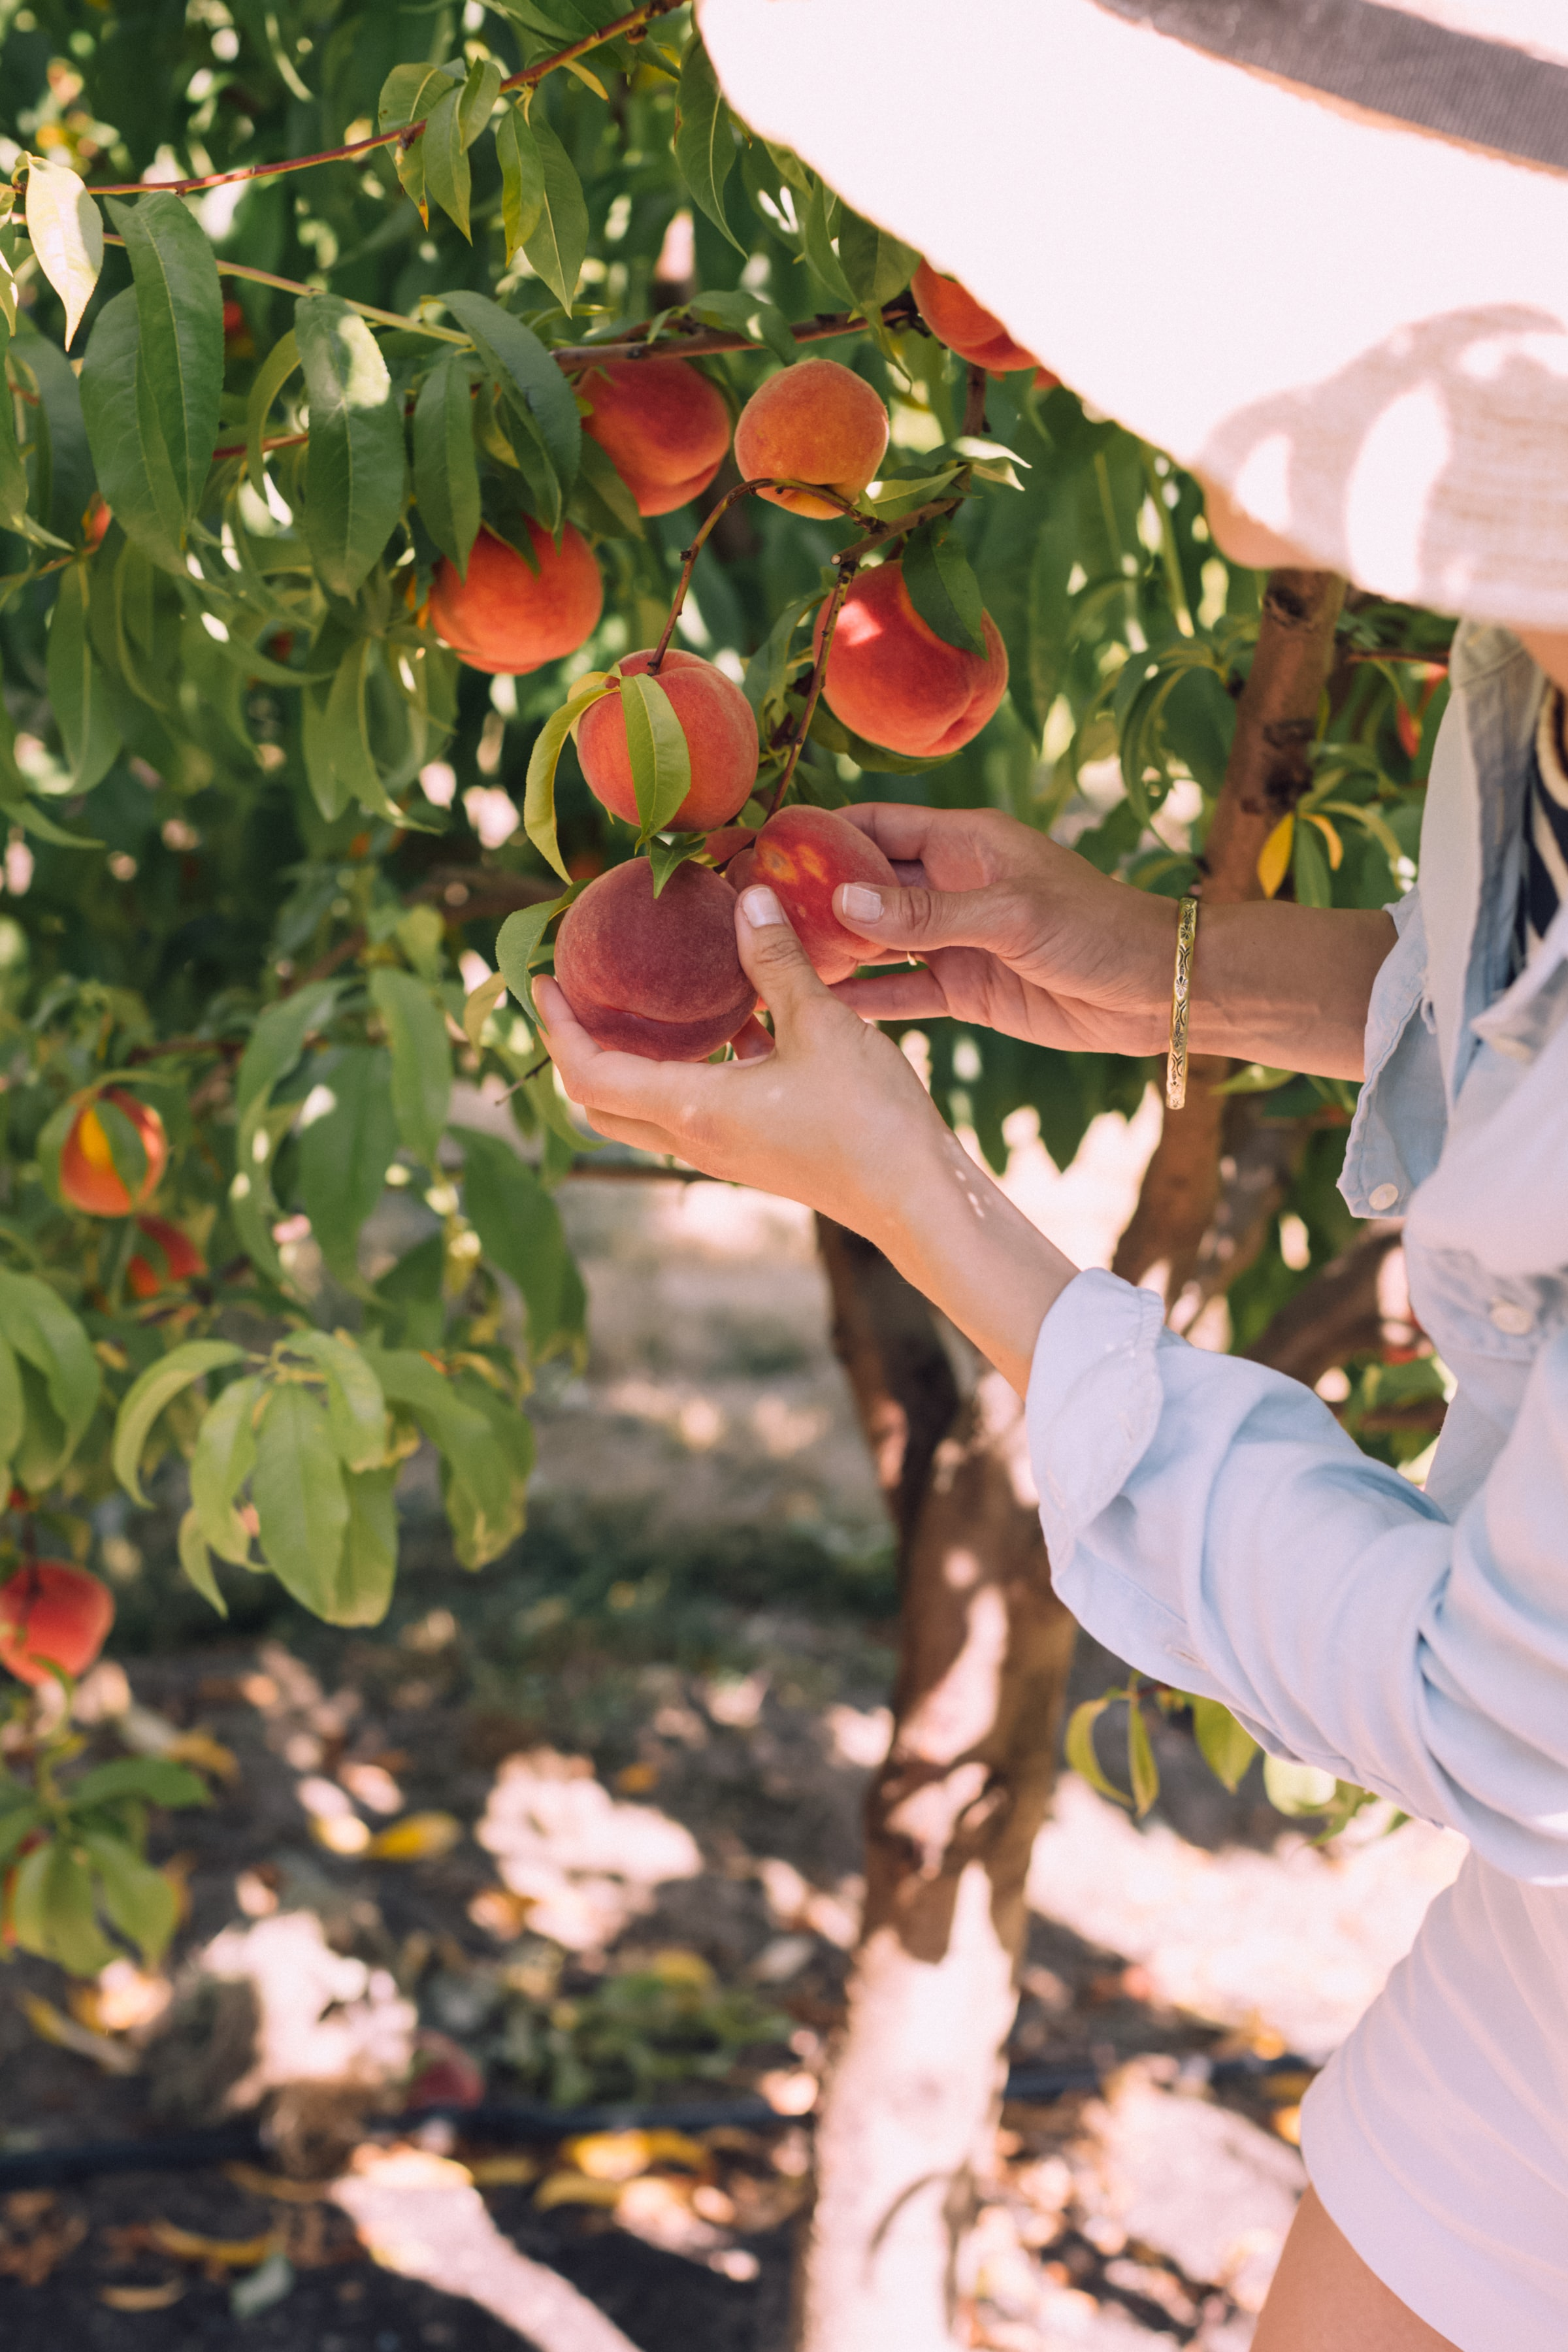 woman picking peaches on tree during daytime